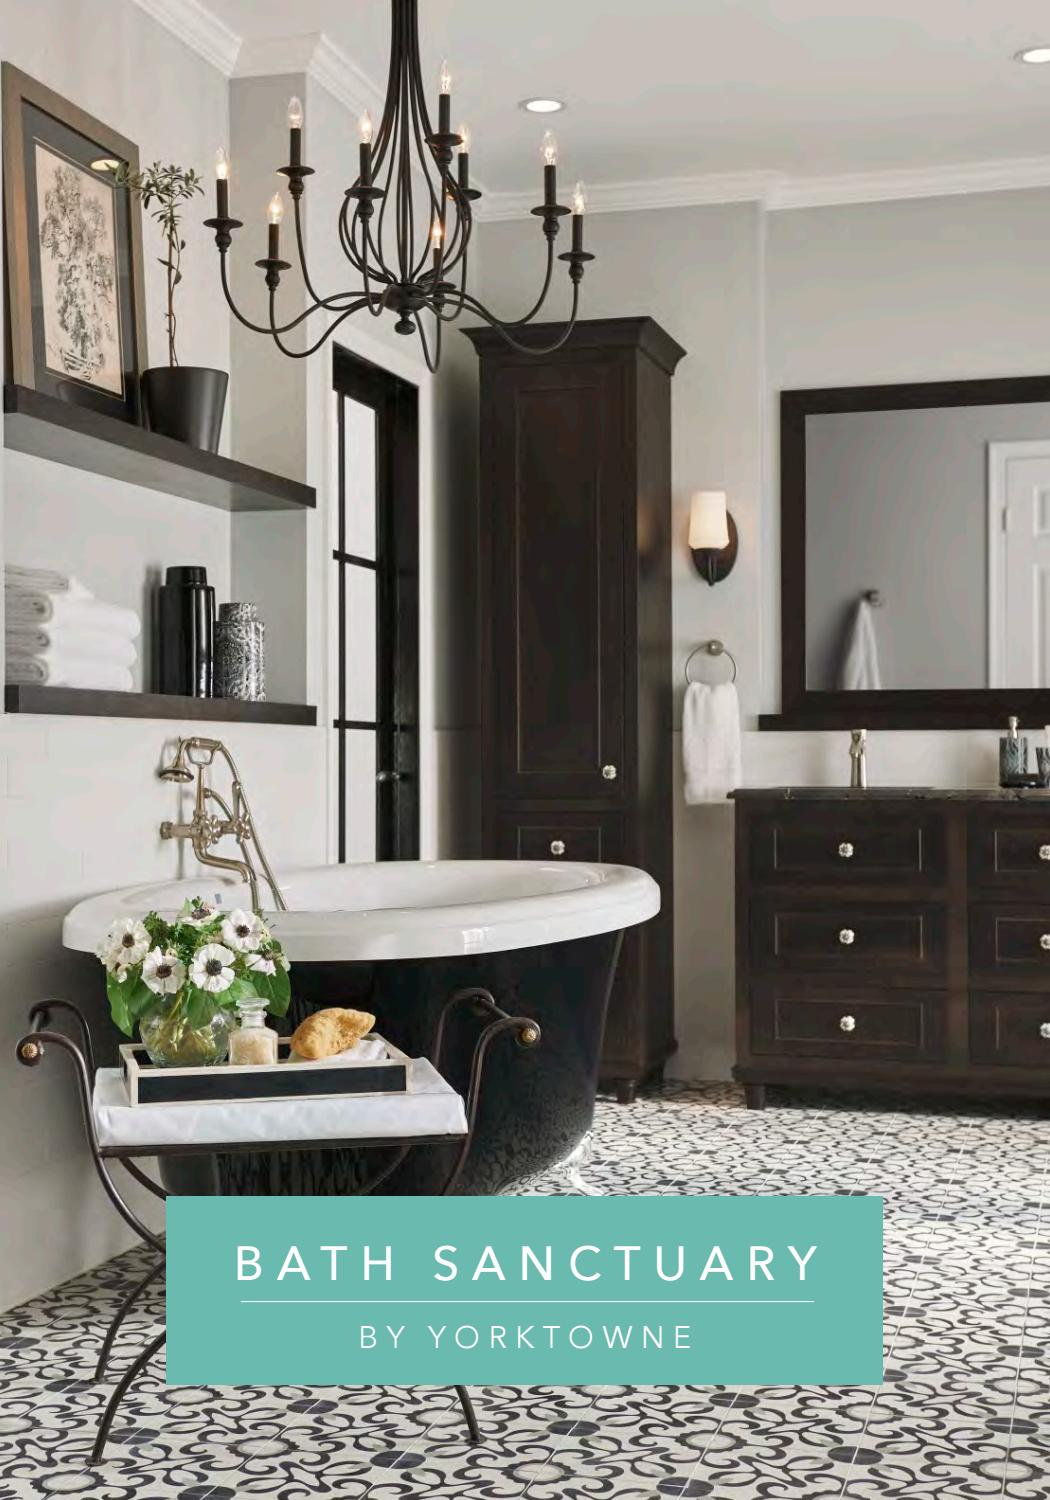 Bath Sanctuary By Yorktowne 2018 Catalog By Whit